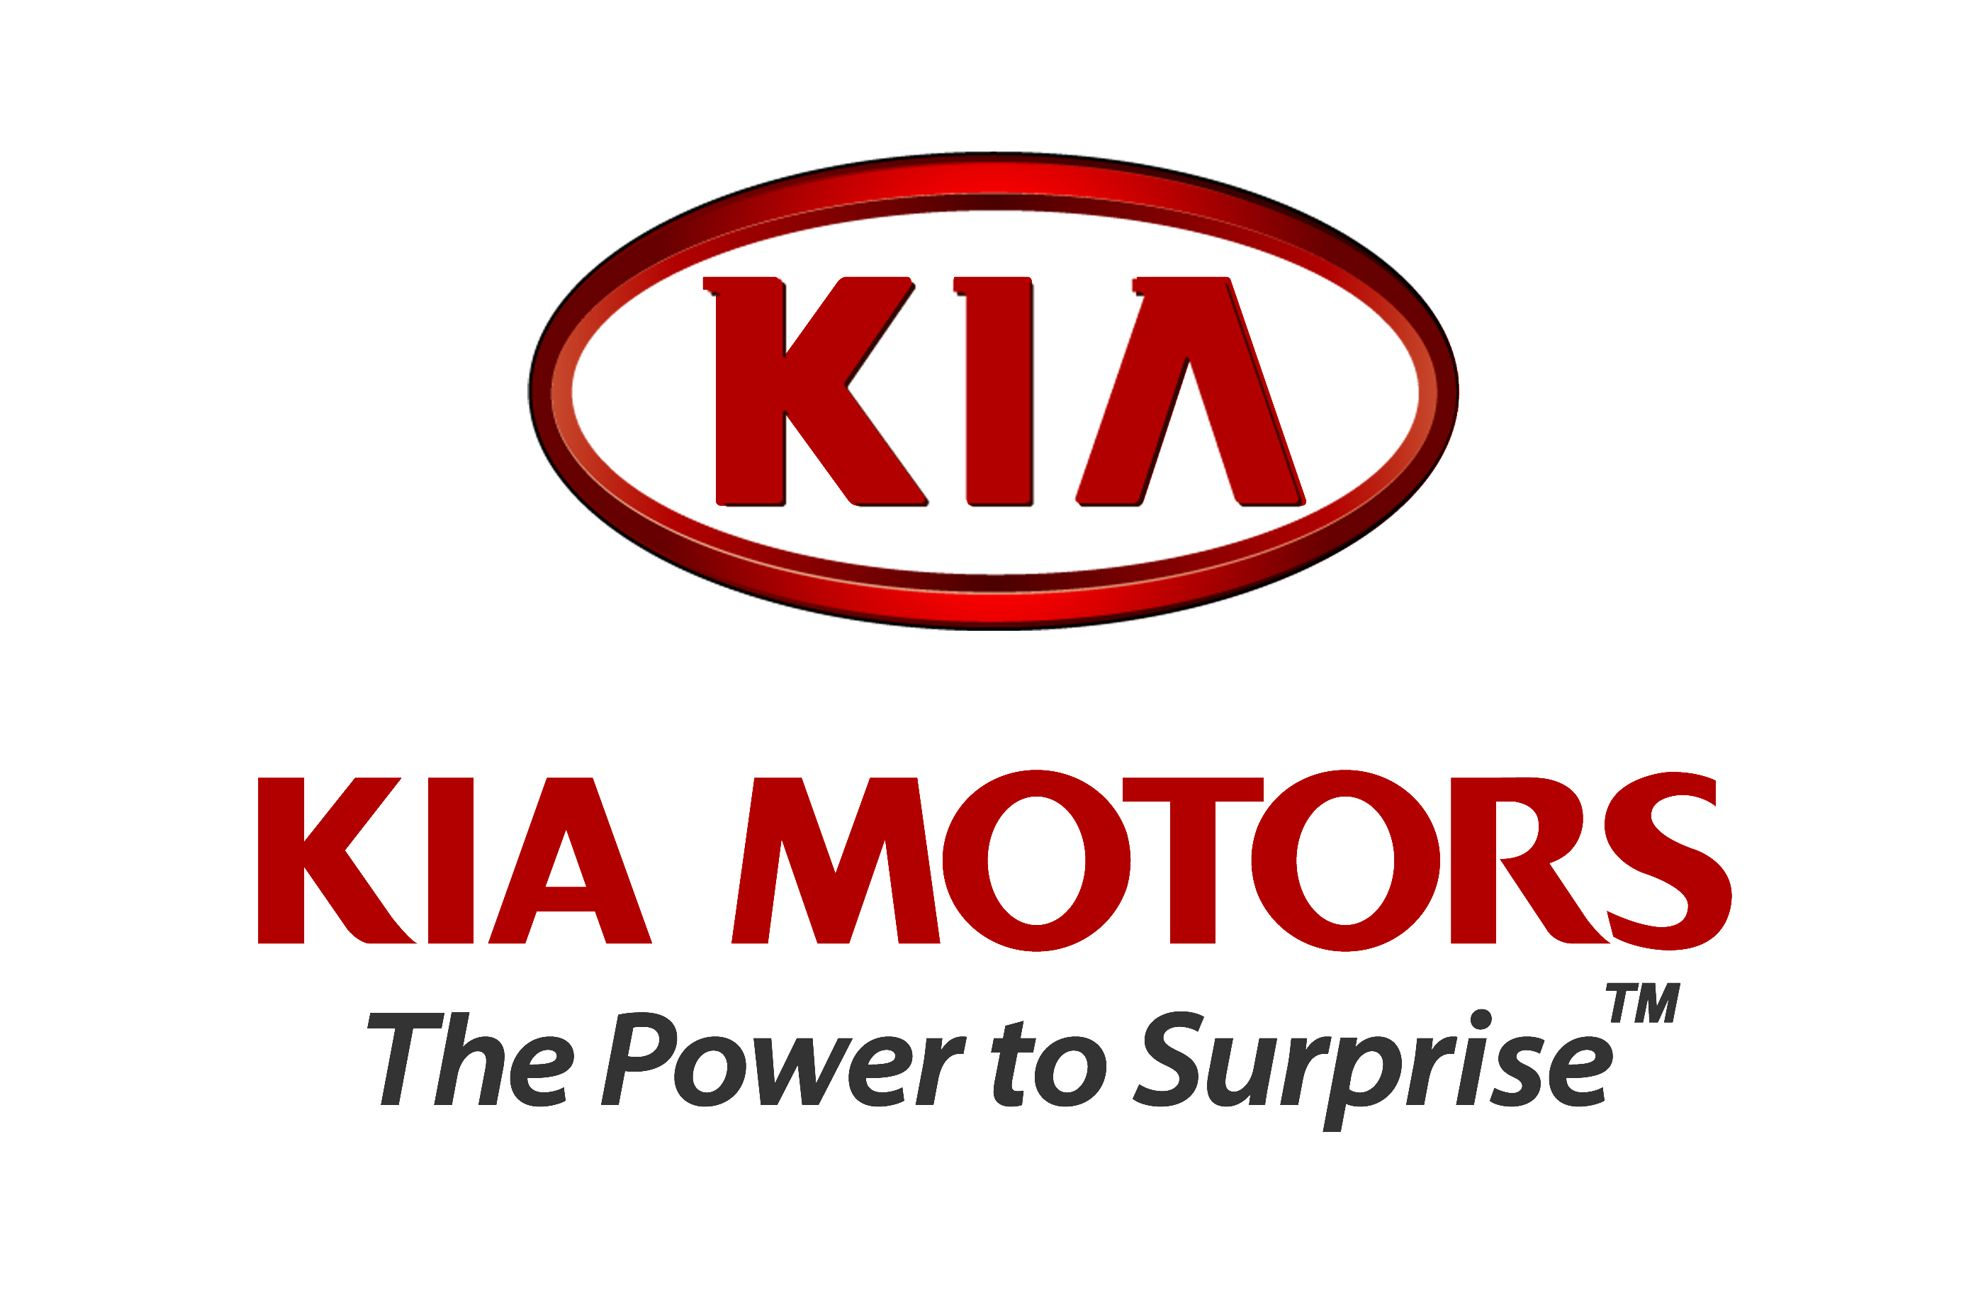 2013 South African Kia Dealer Of The Year